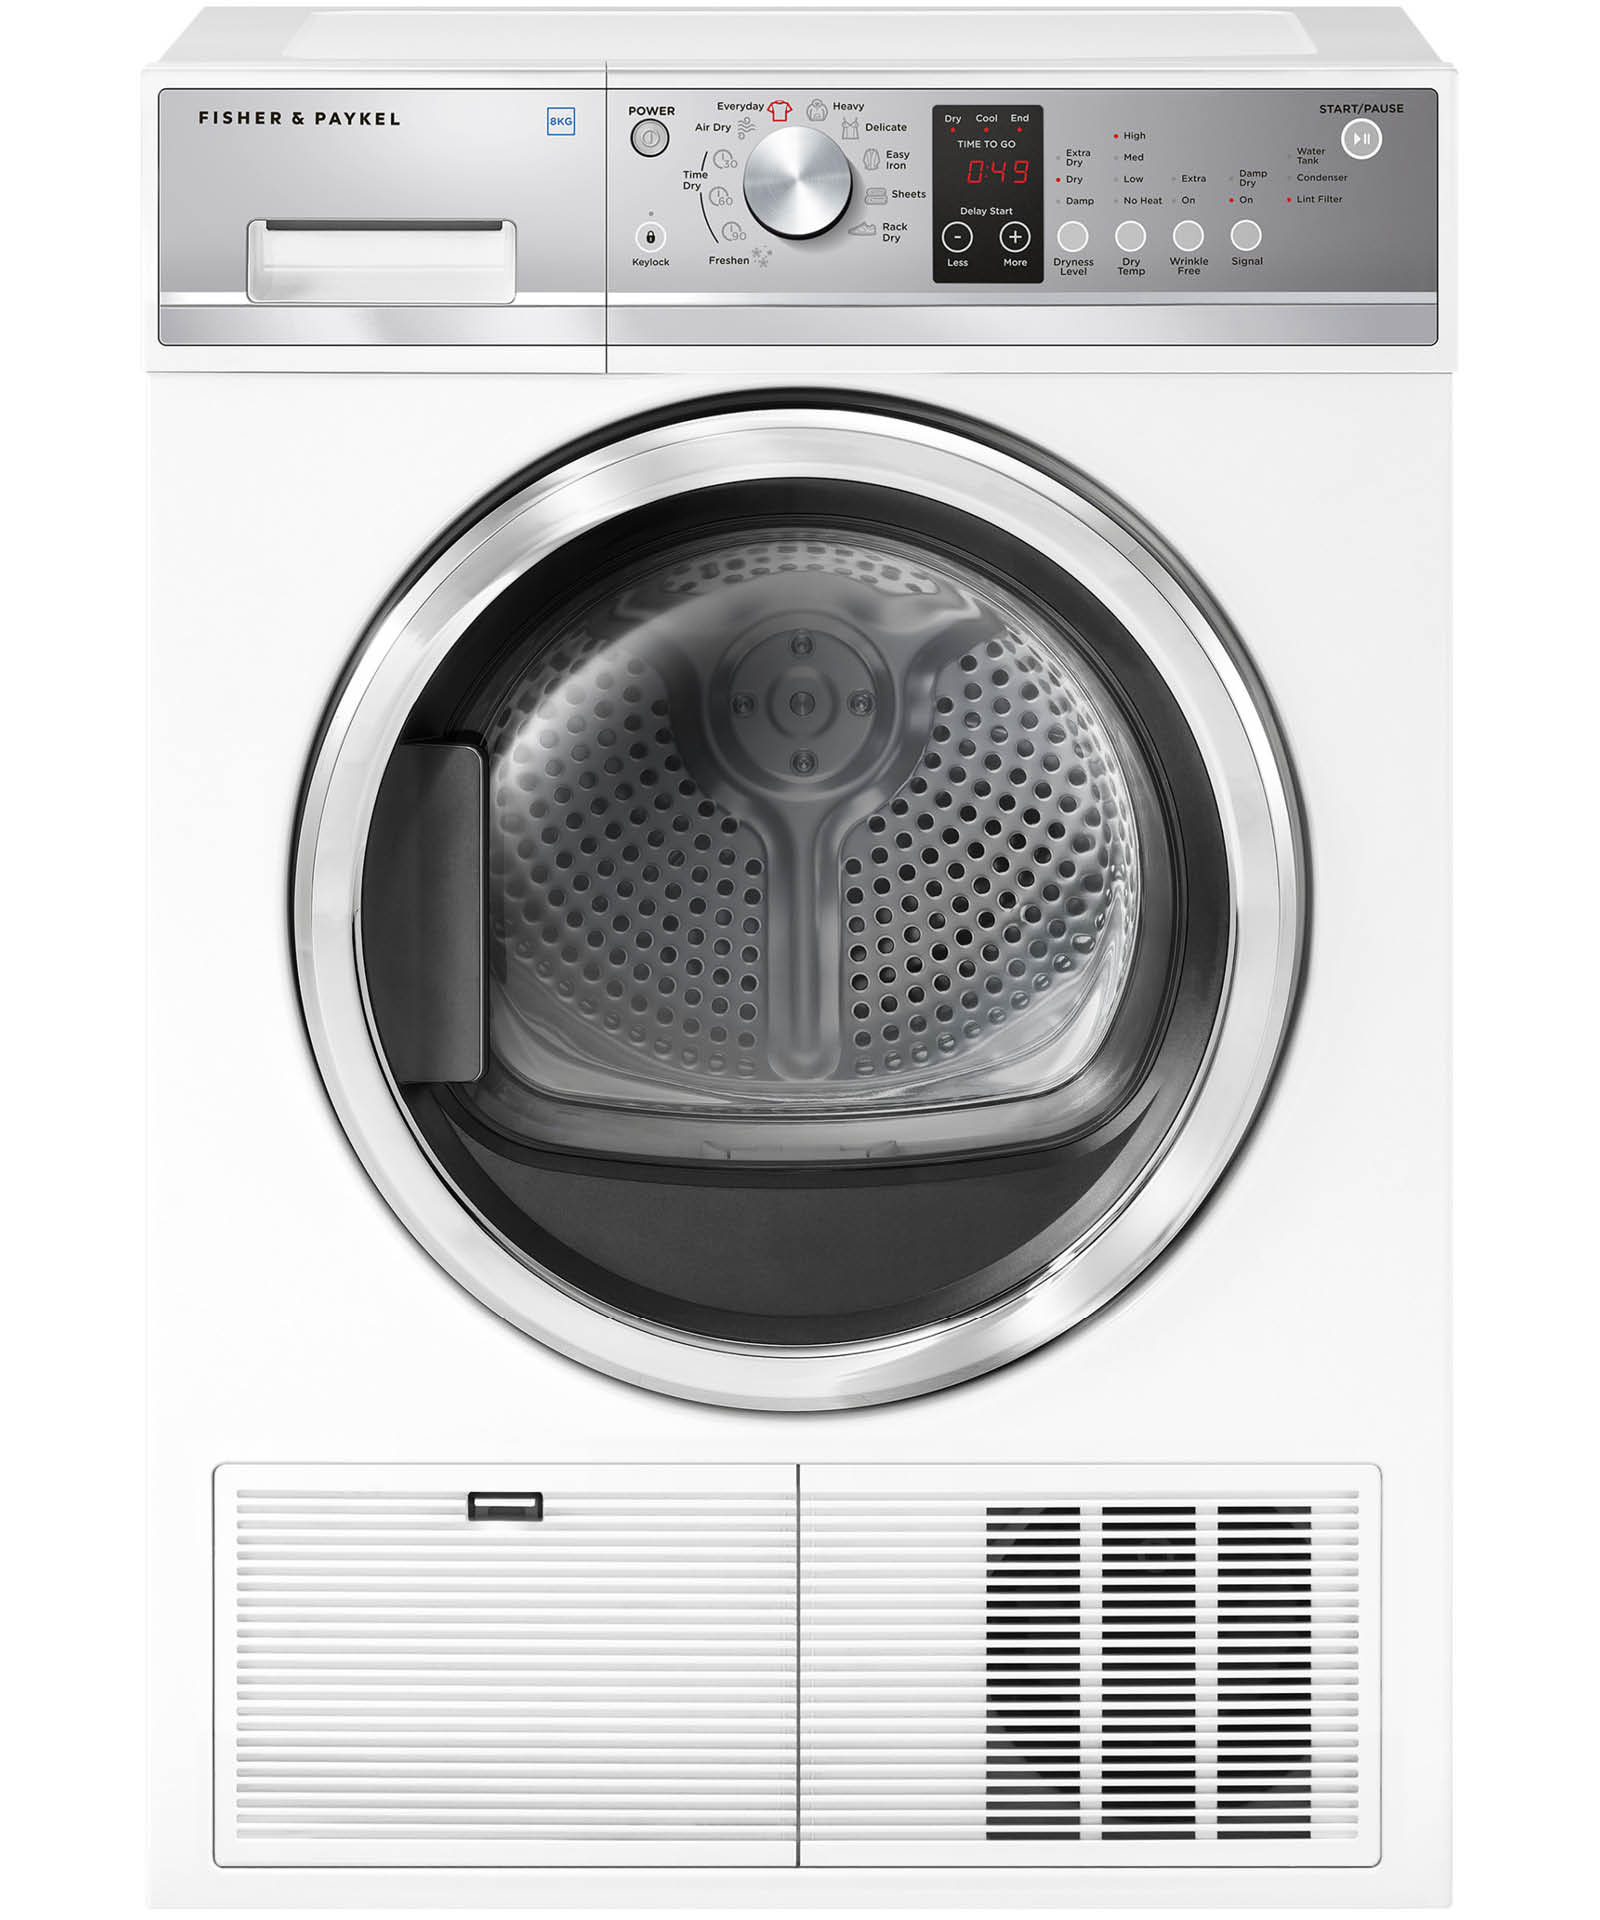 DE8060P2 - Fisher & Paykel 8 kg Condensing Dryer